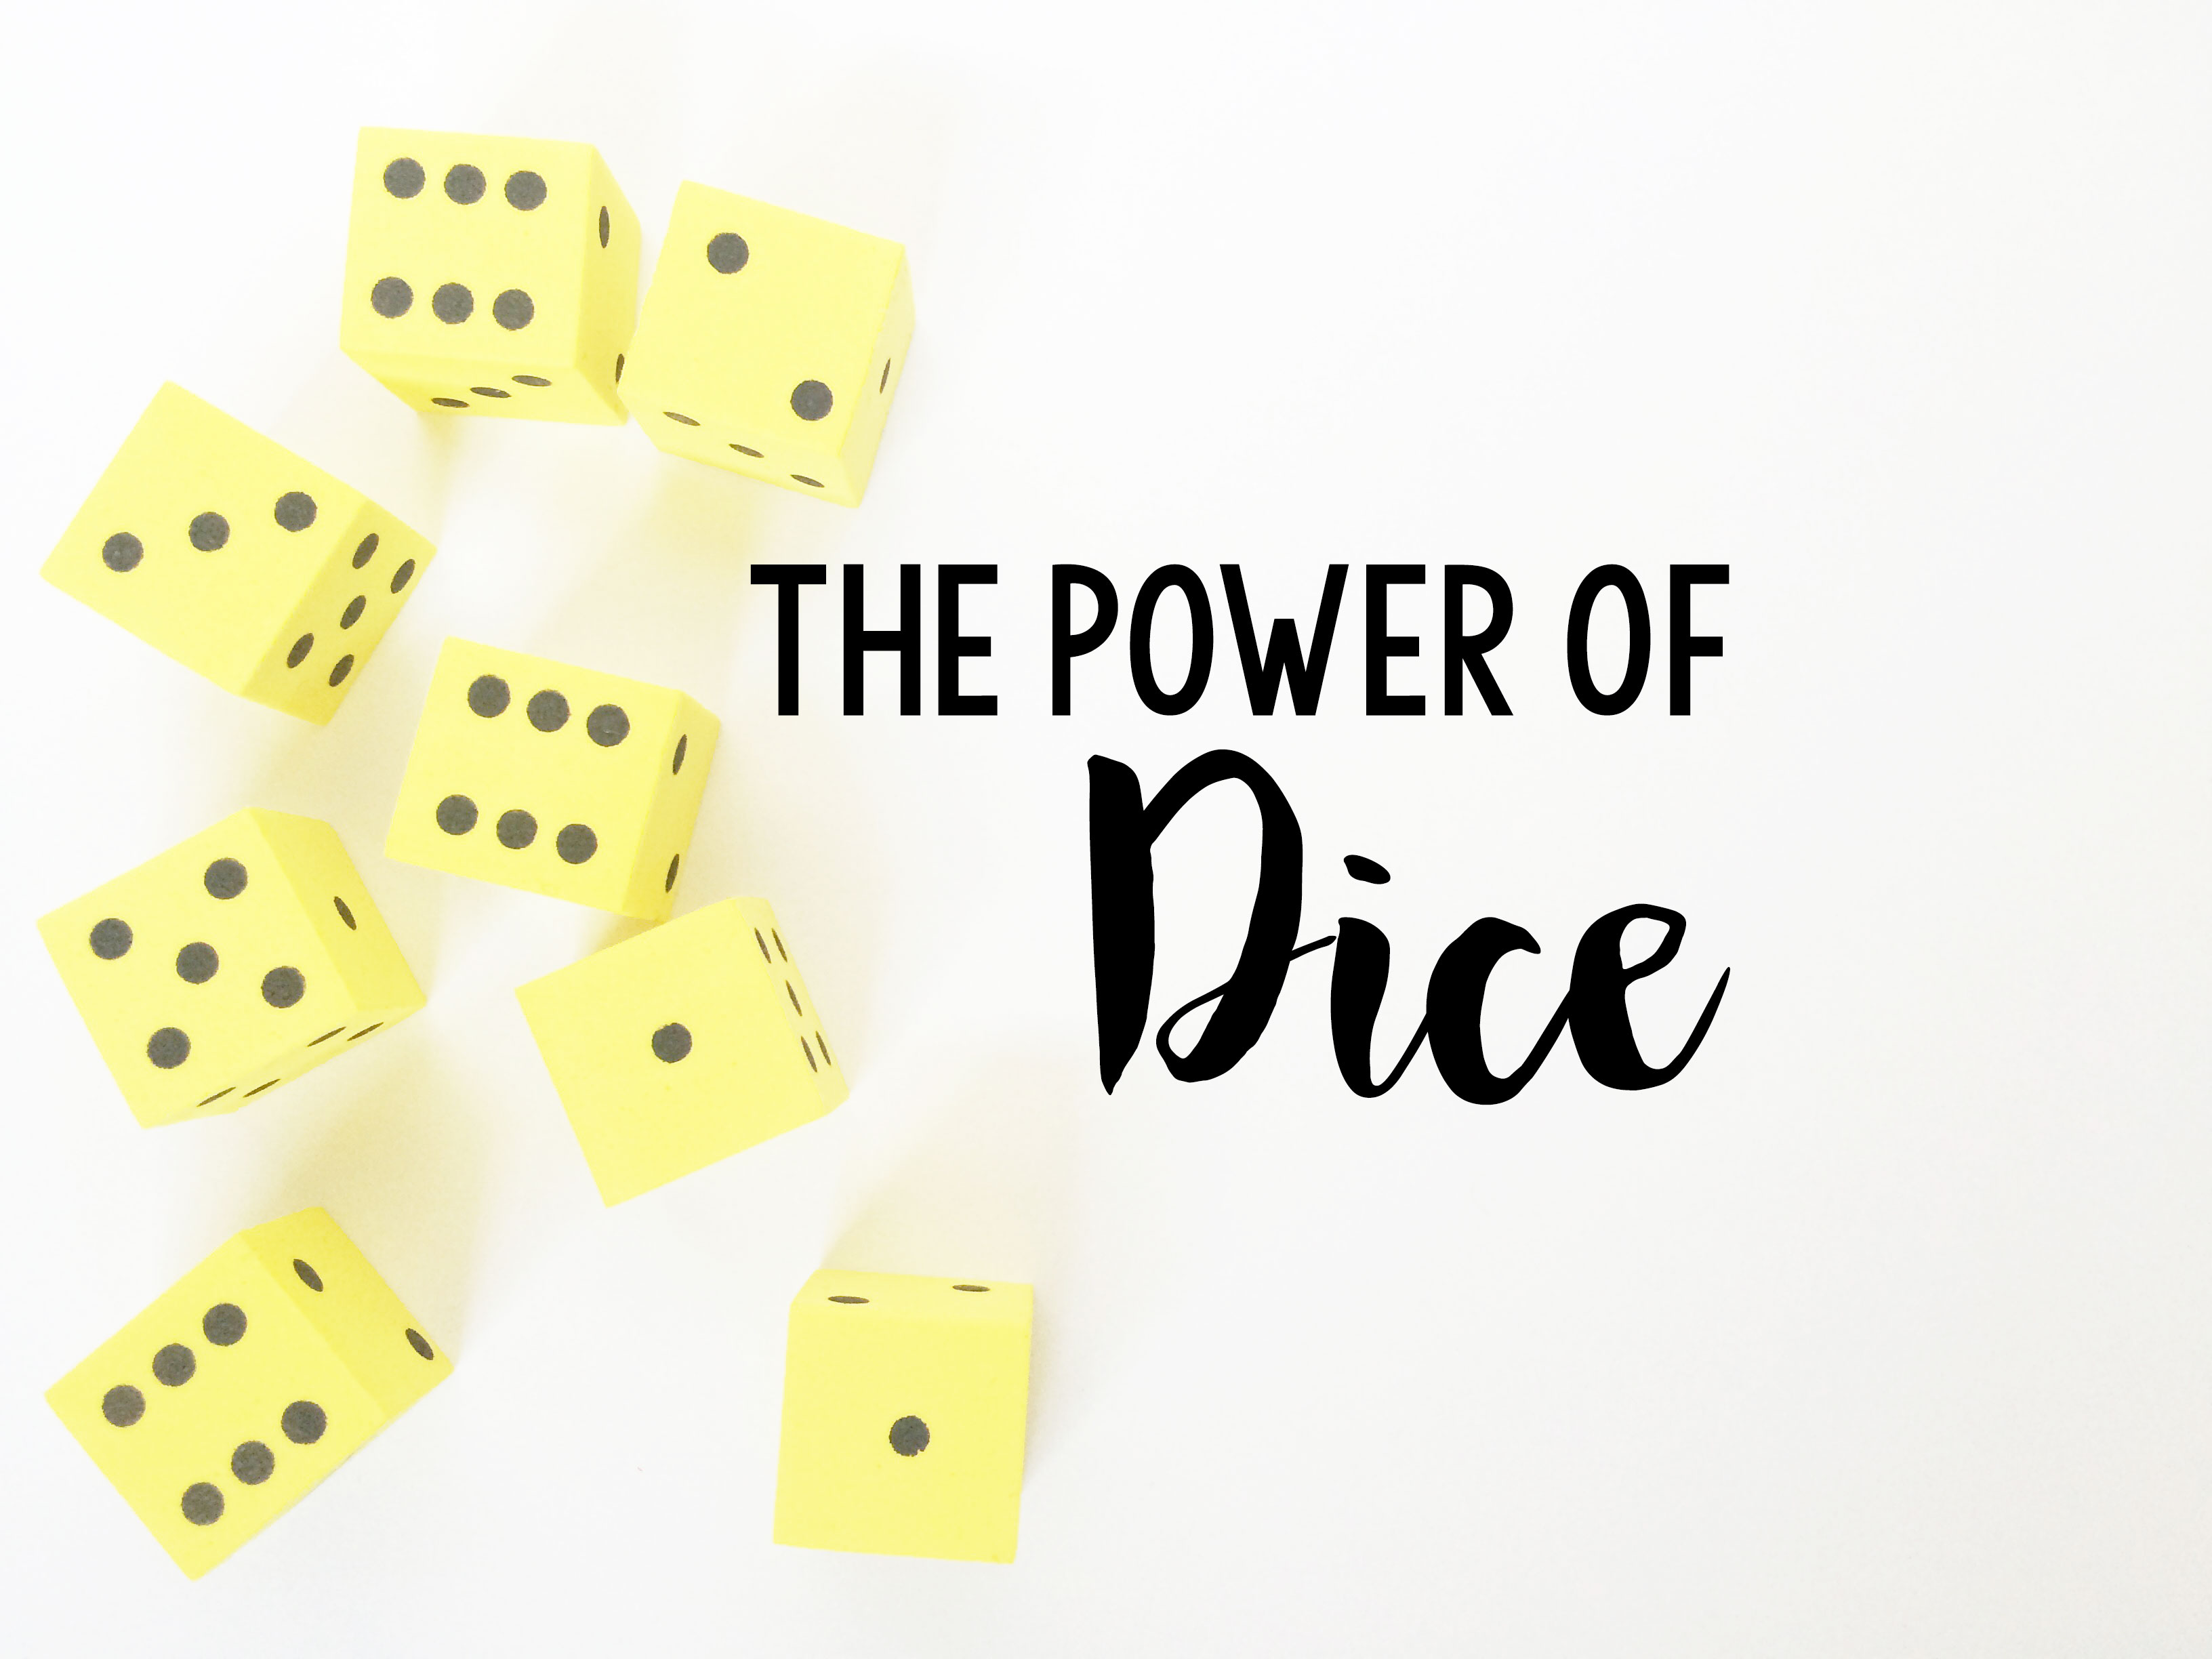 The power of dice